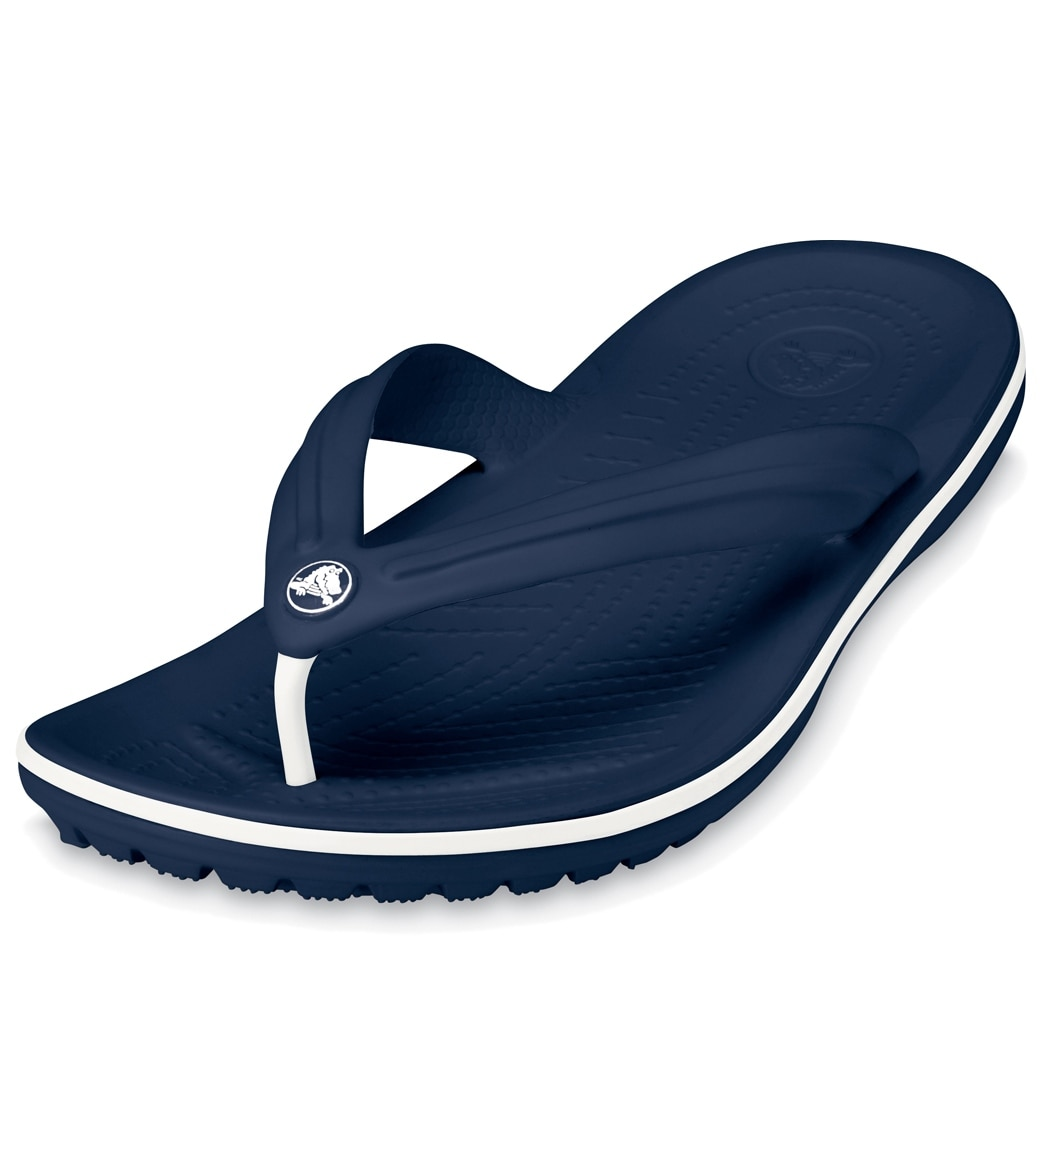 ff5b056d9b08 Crocs Crocband Flip Flop at SwimOutlet.com